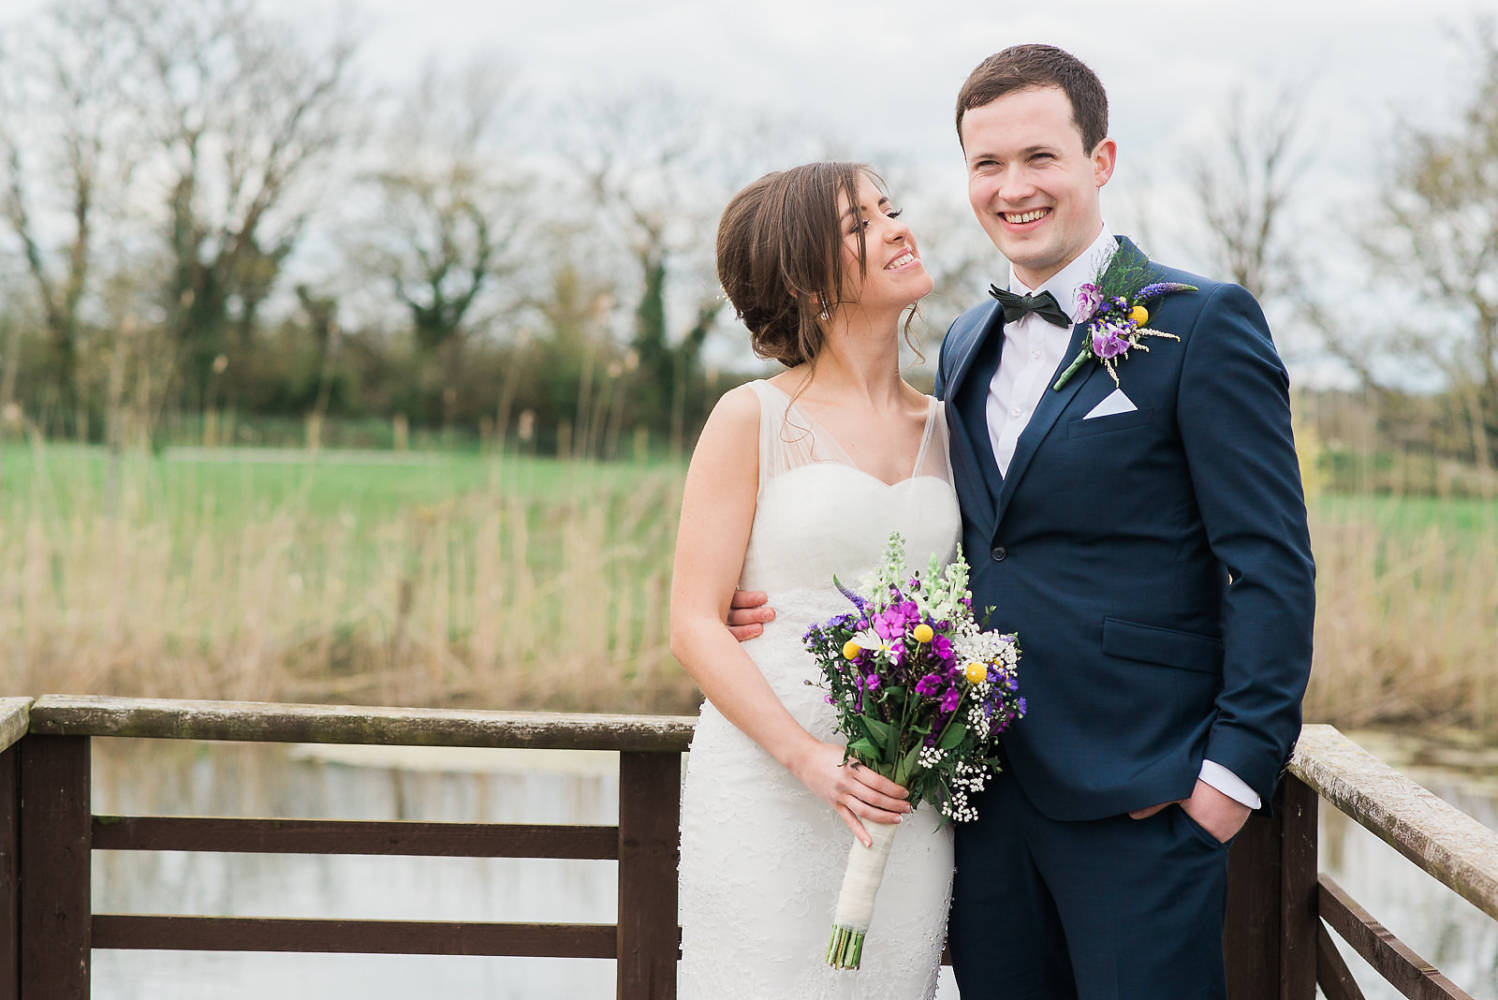 Kathy-Silke-Photography-Ireland-Wedding-Photographer-Dublin ...